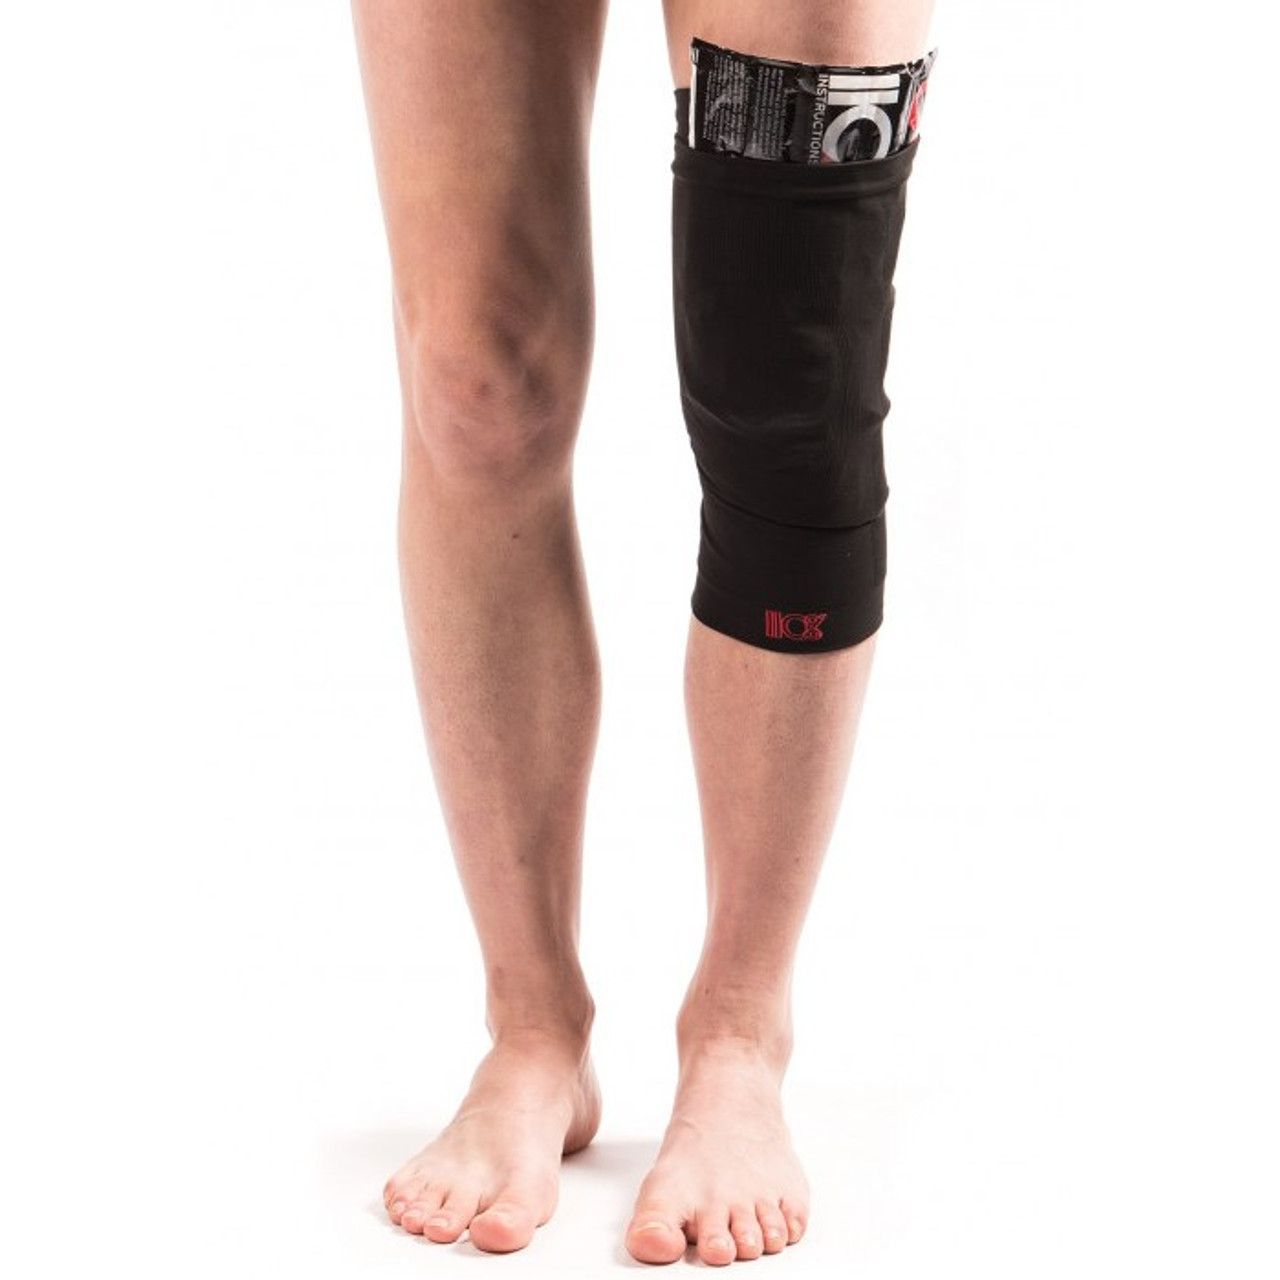 383ade8739 ... 110% Compression Blitz Knee Sleeve + Ice Recovery - On